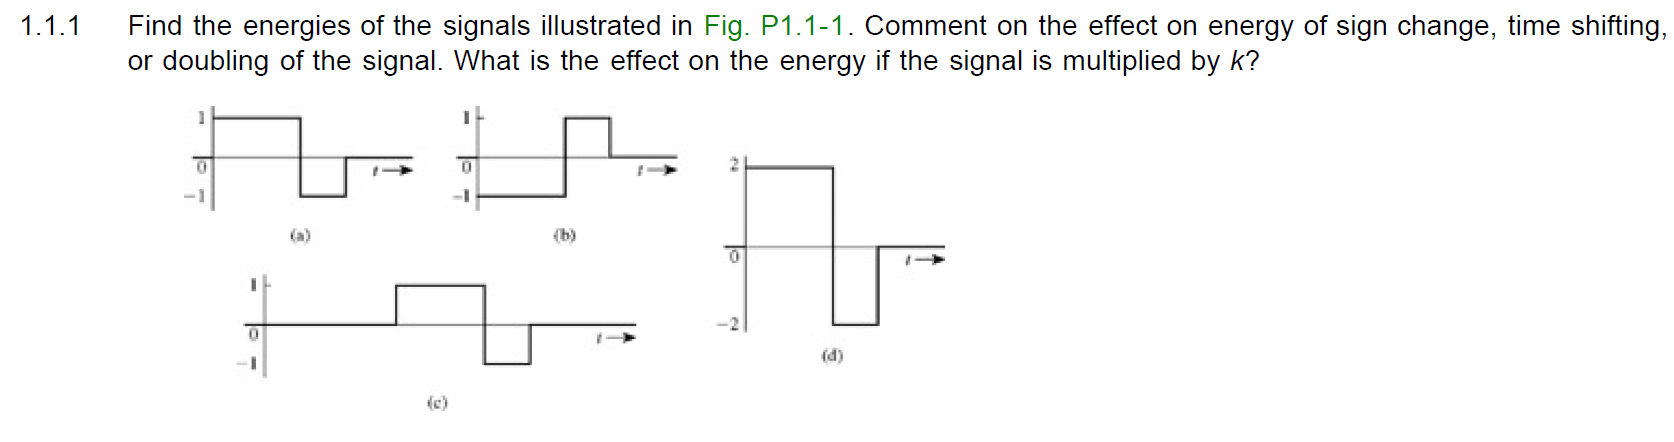 Find the energies of the signals illustrated in Fi